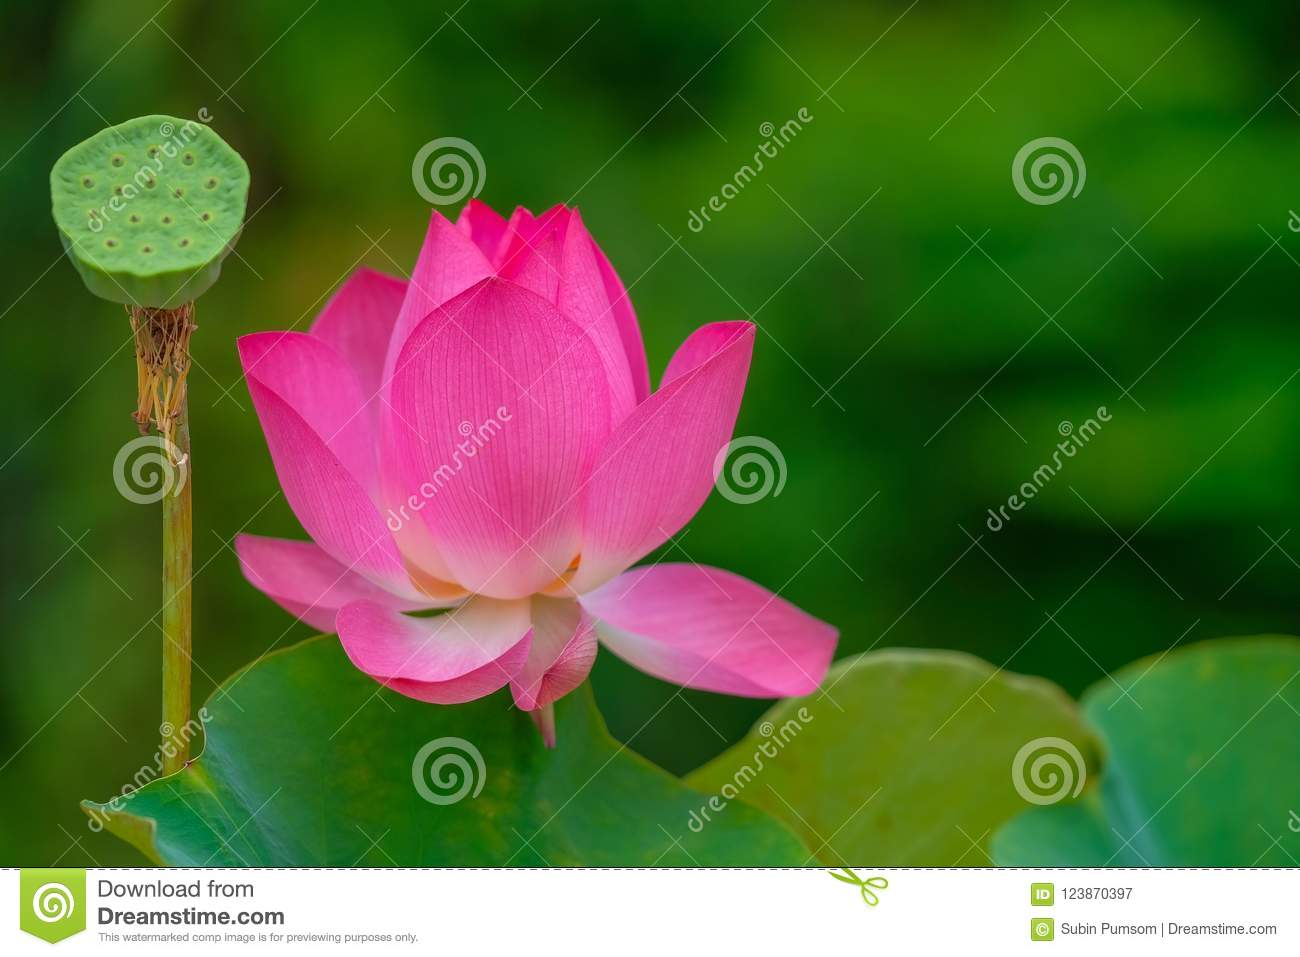 Royalty High Quality Free Stock Image Of A Pink Lotus Flower Stock